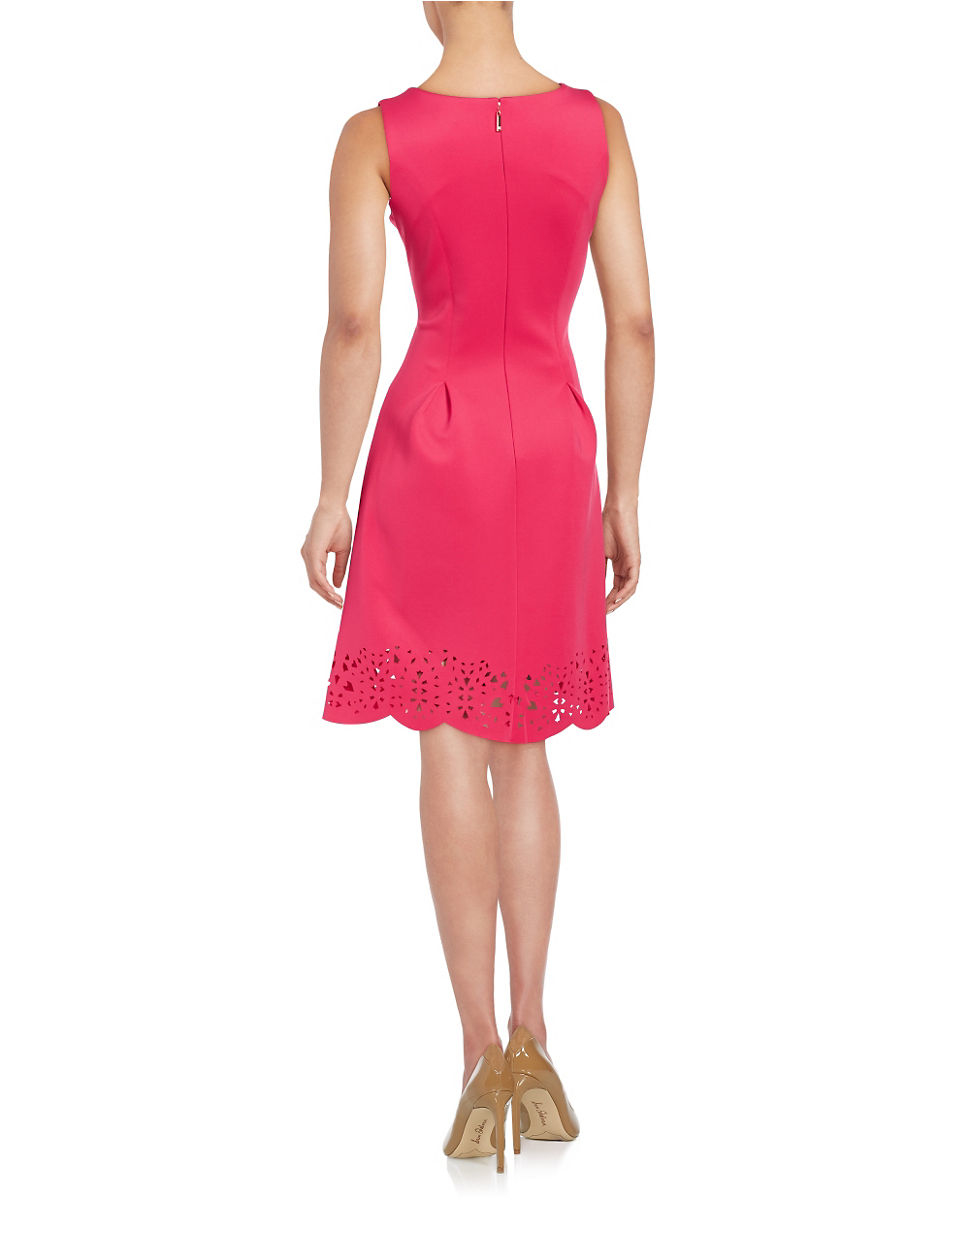 Ivanka trump Laser Cut Fit-and-flare Dress in Red | Lyst